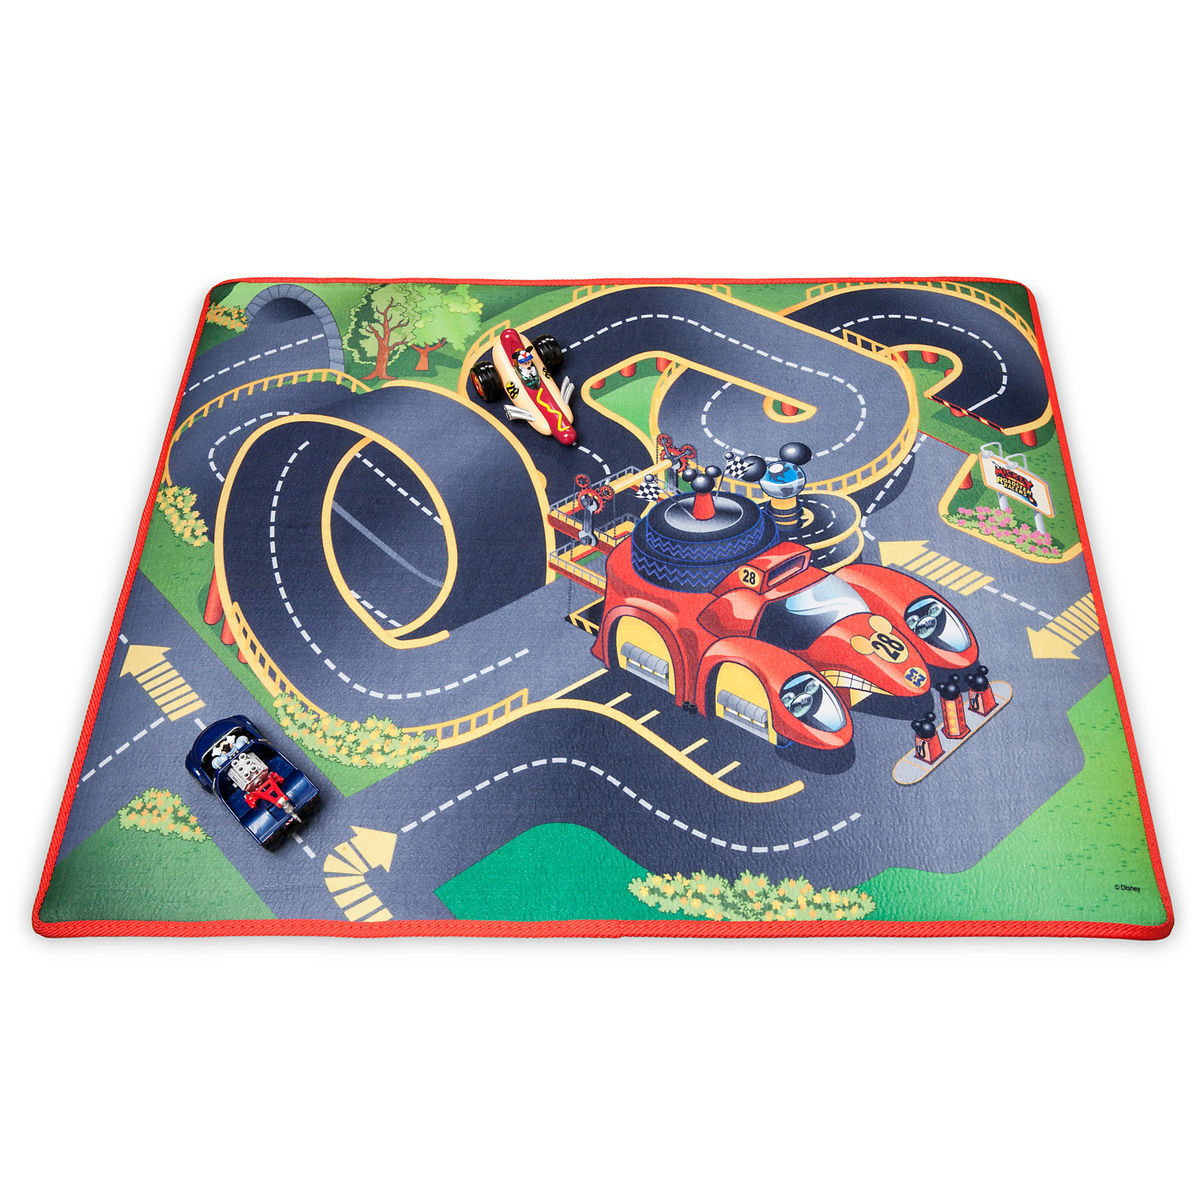 Product Image Of Mickey And The Roadster Racers Playmat Vehicles Play Set 1